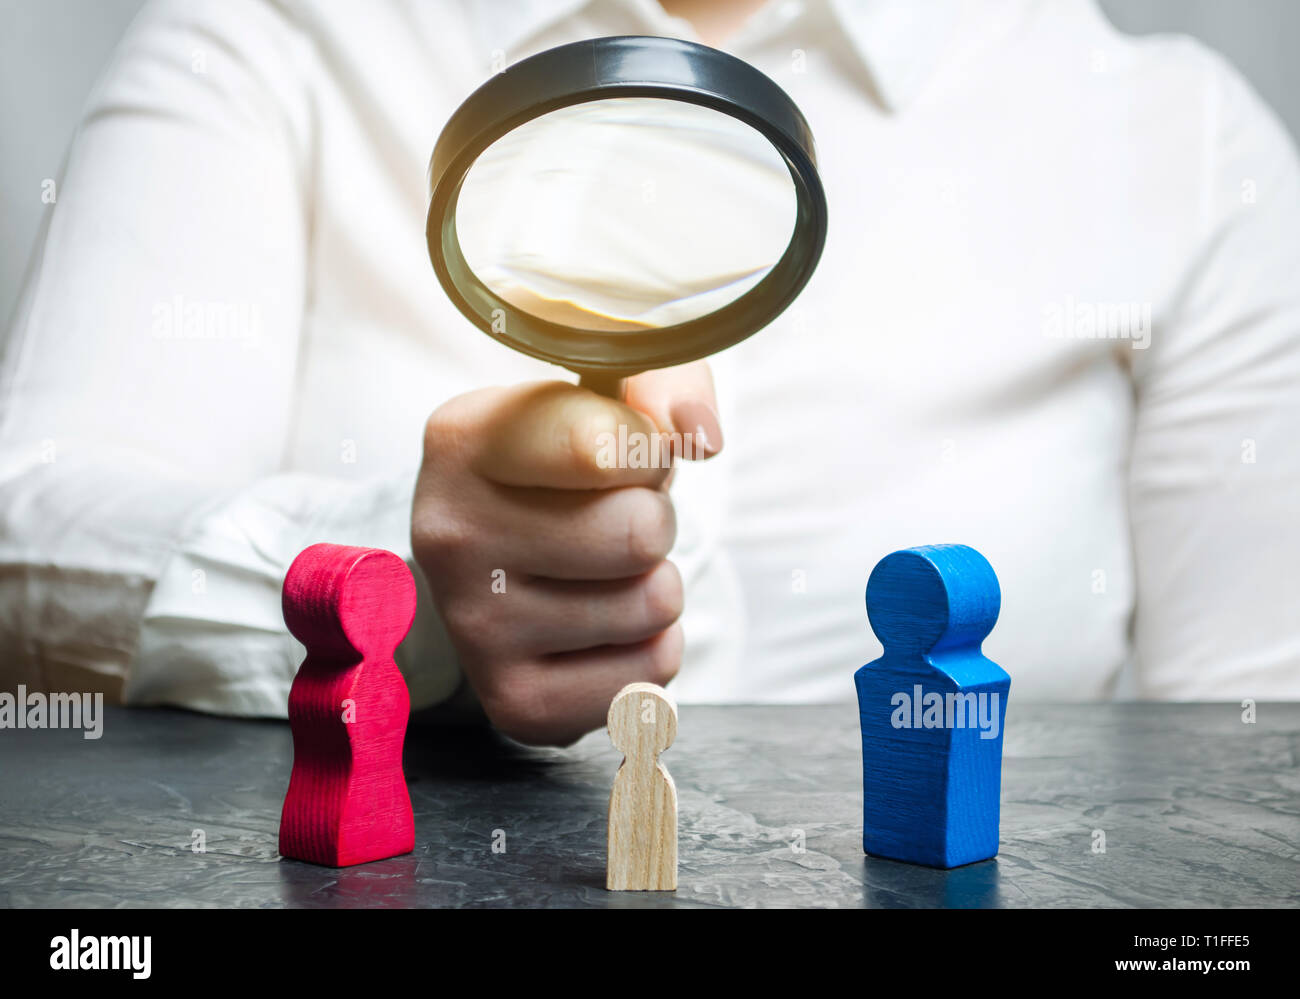 The doctor's hand is holding a magnifying glass over the child's figure. The court decision on custody of the child by one of the parents after the di - Stock Image